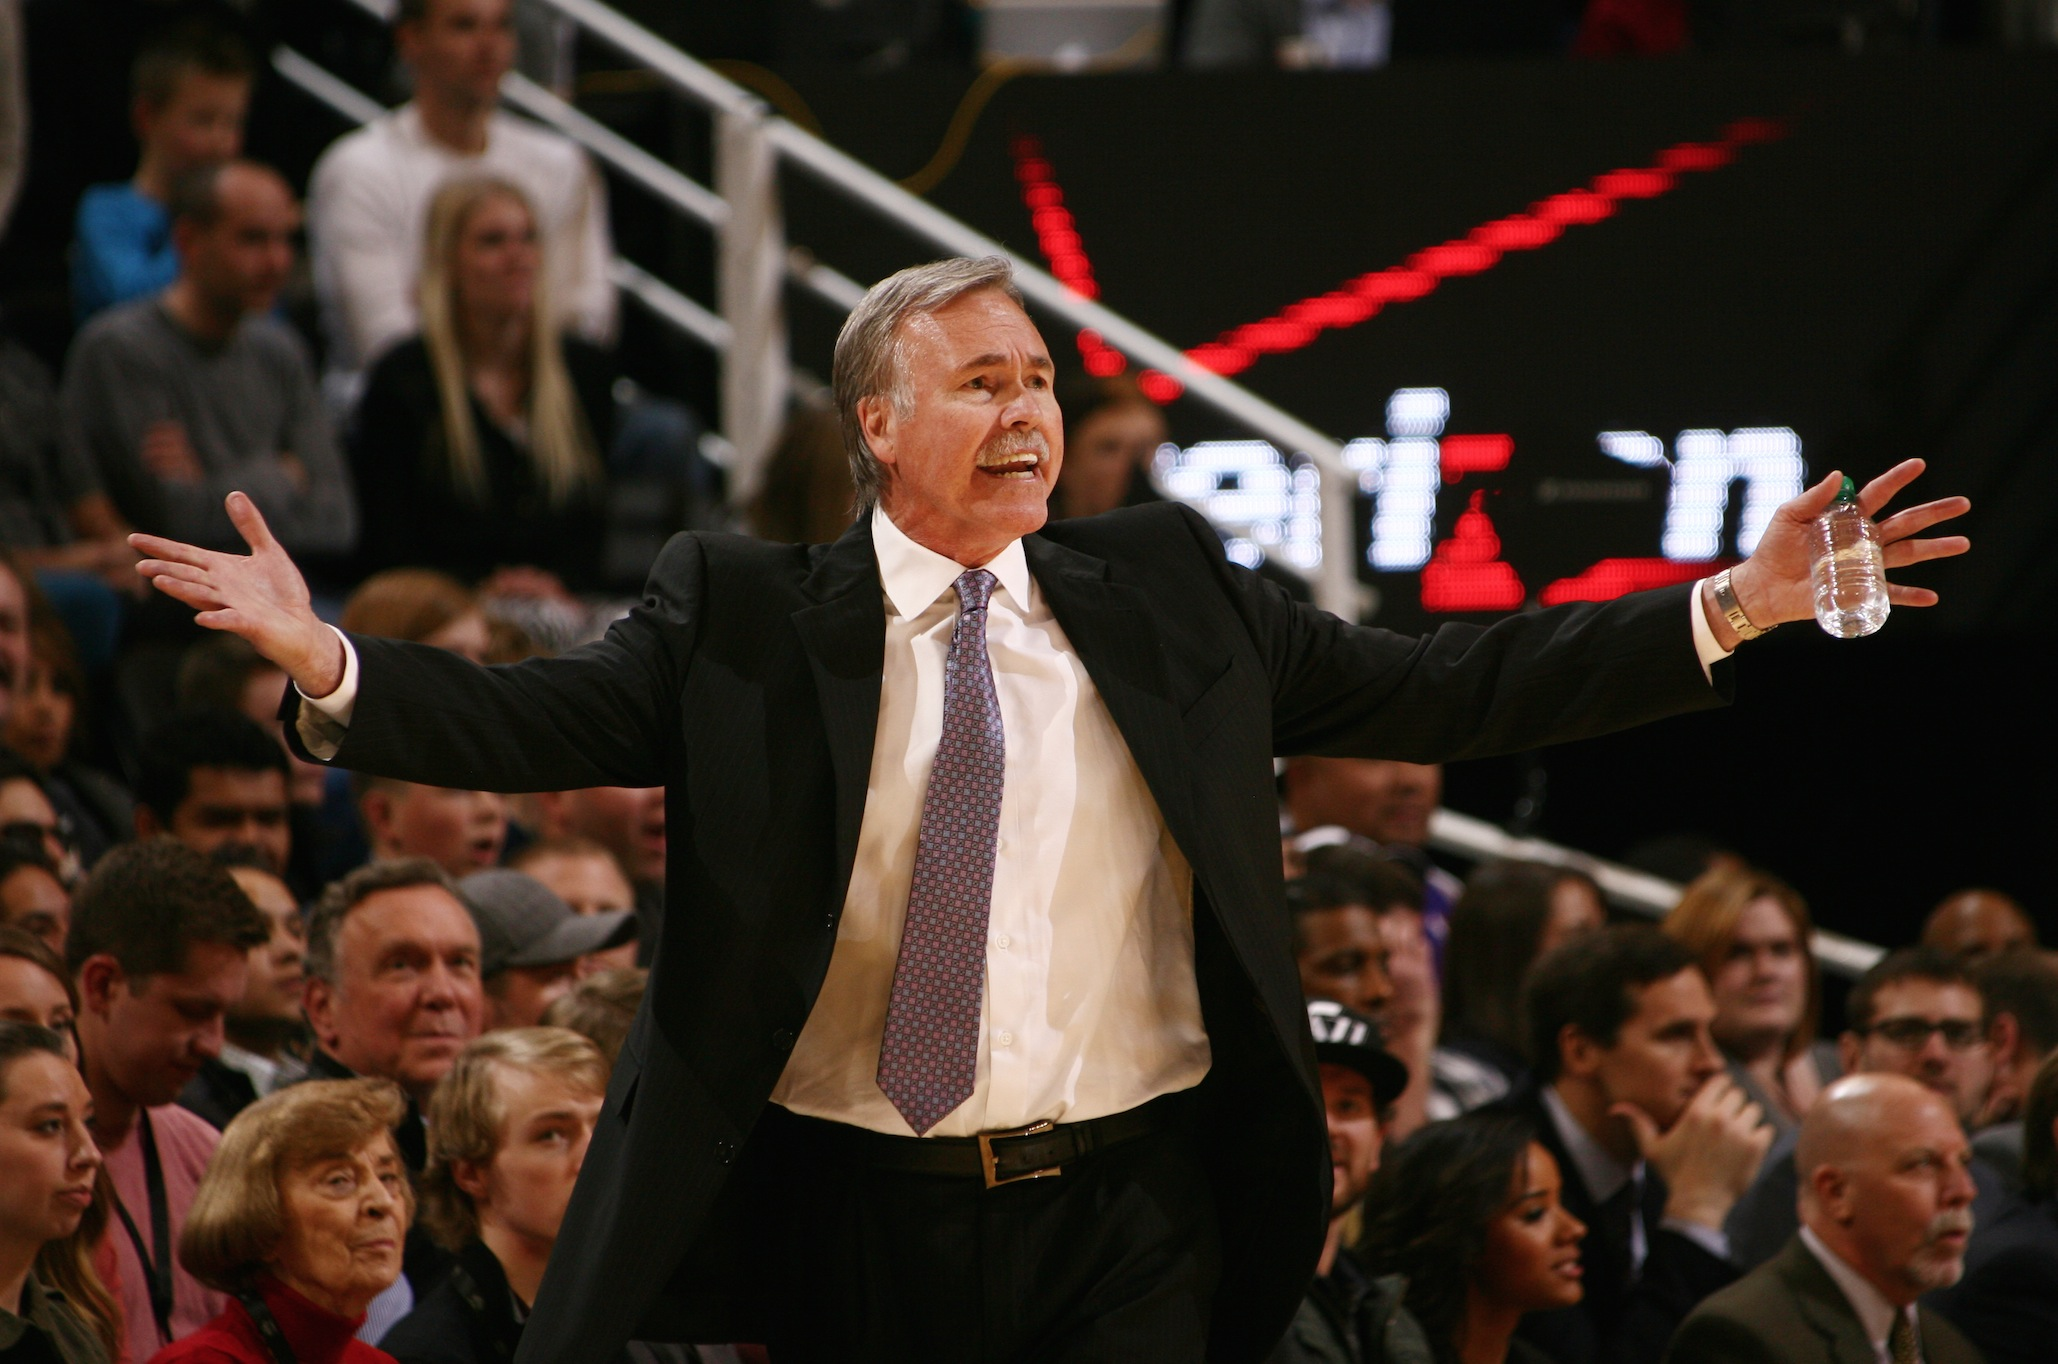 Mike D'Antoni resigns: What's next for the Lakers?